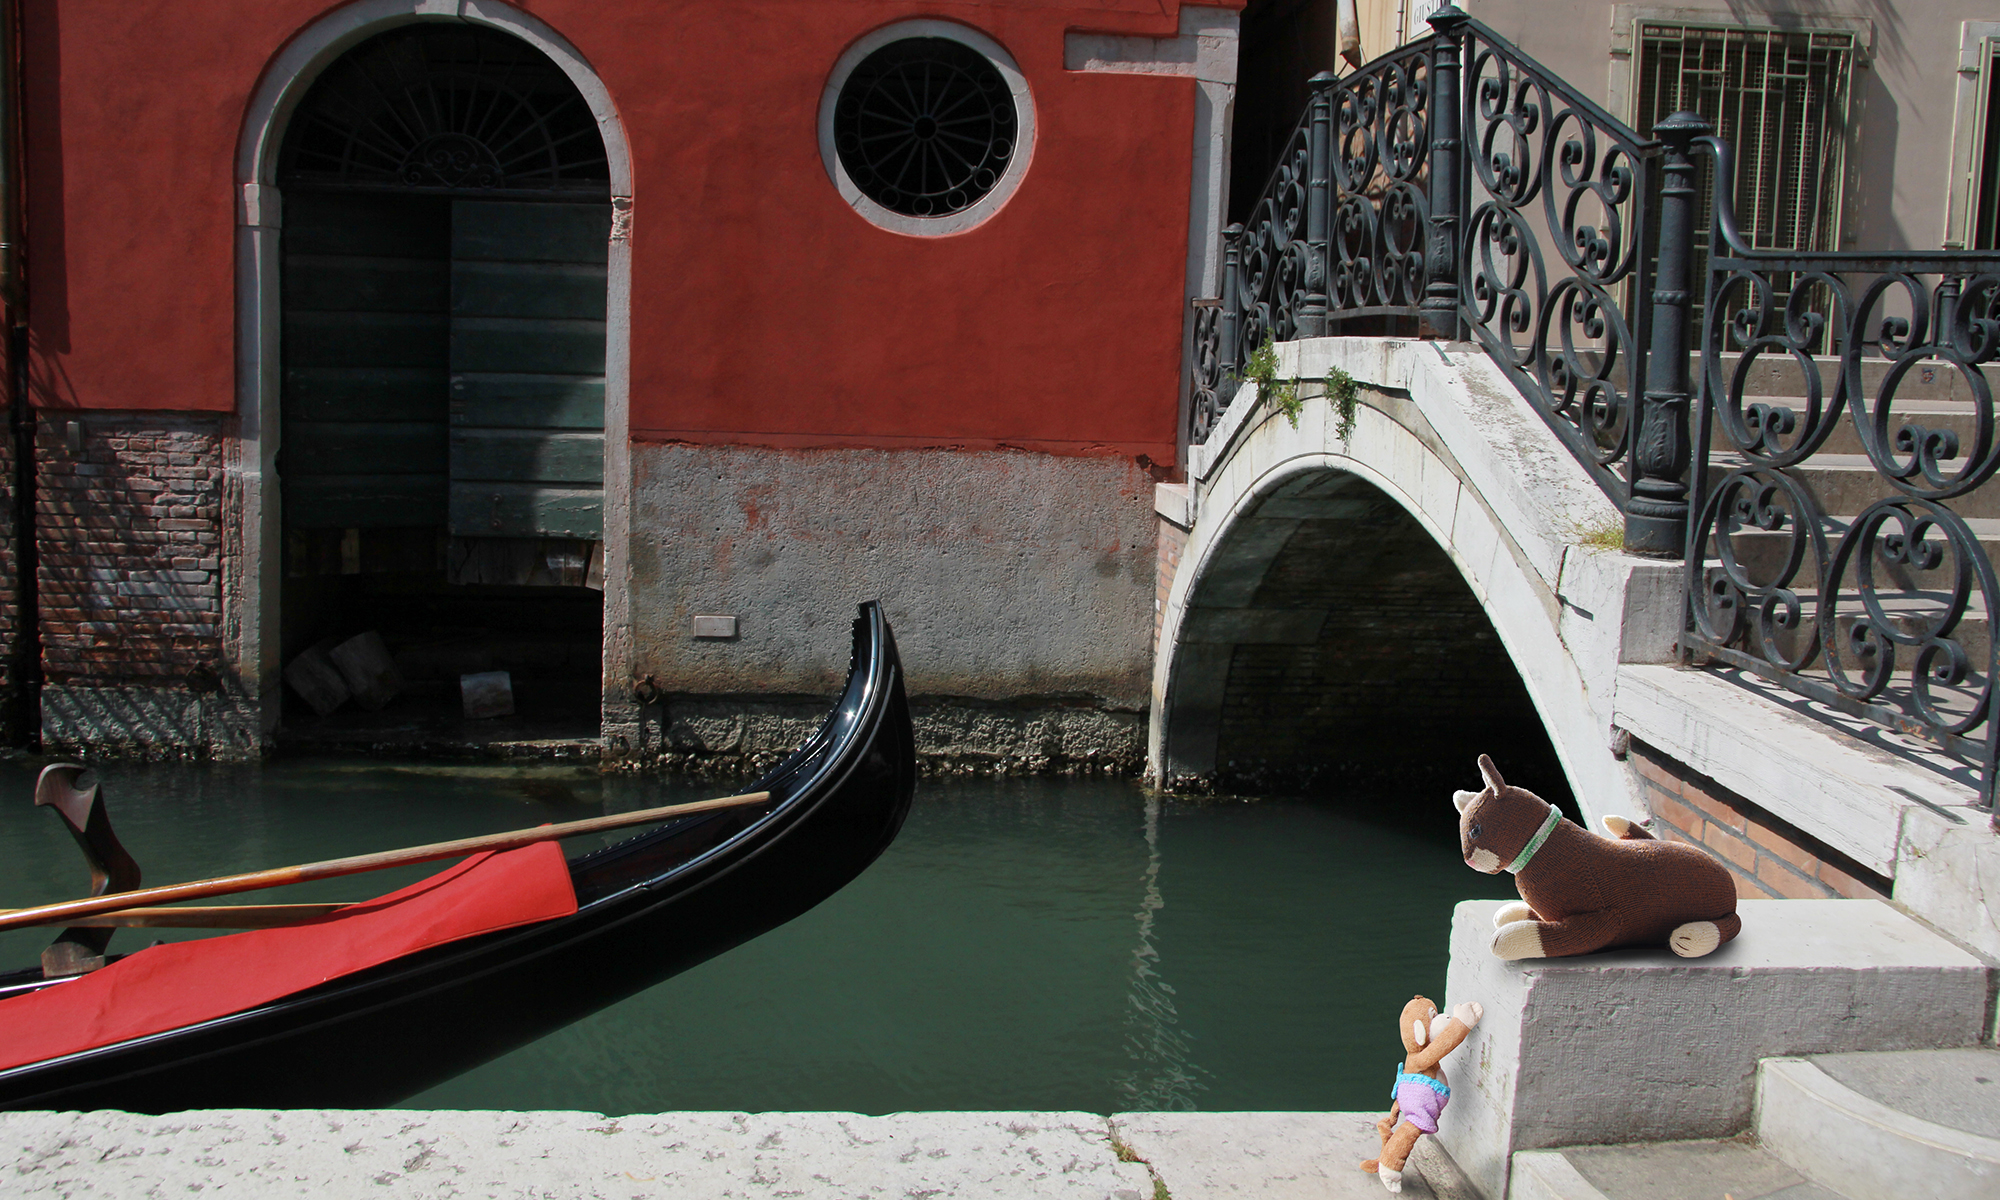 Tomasina the knitted cat in Venice with Monkey